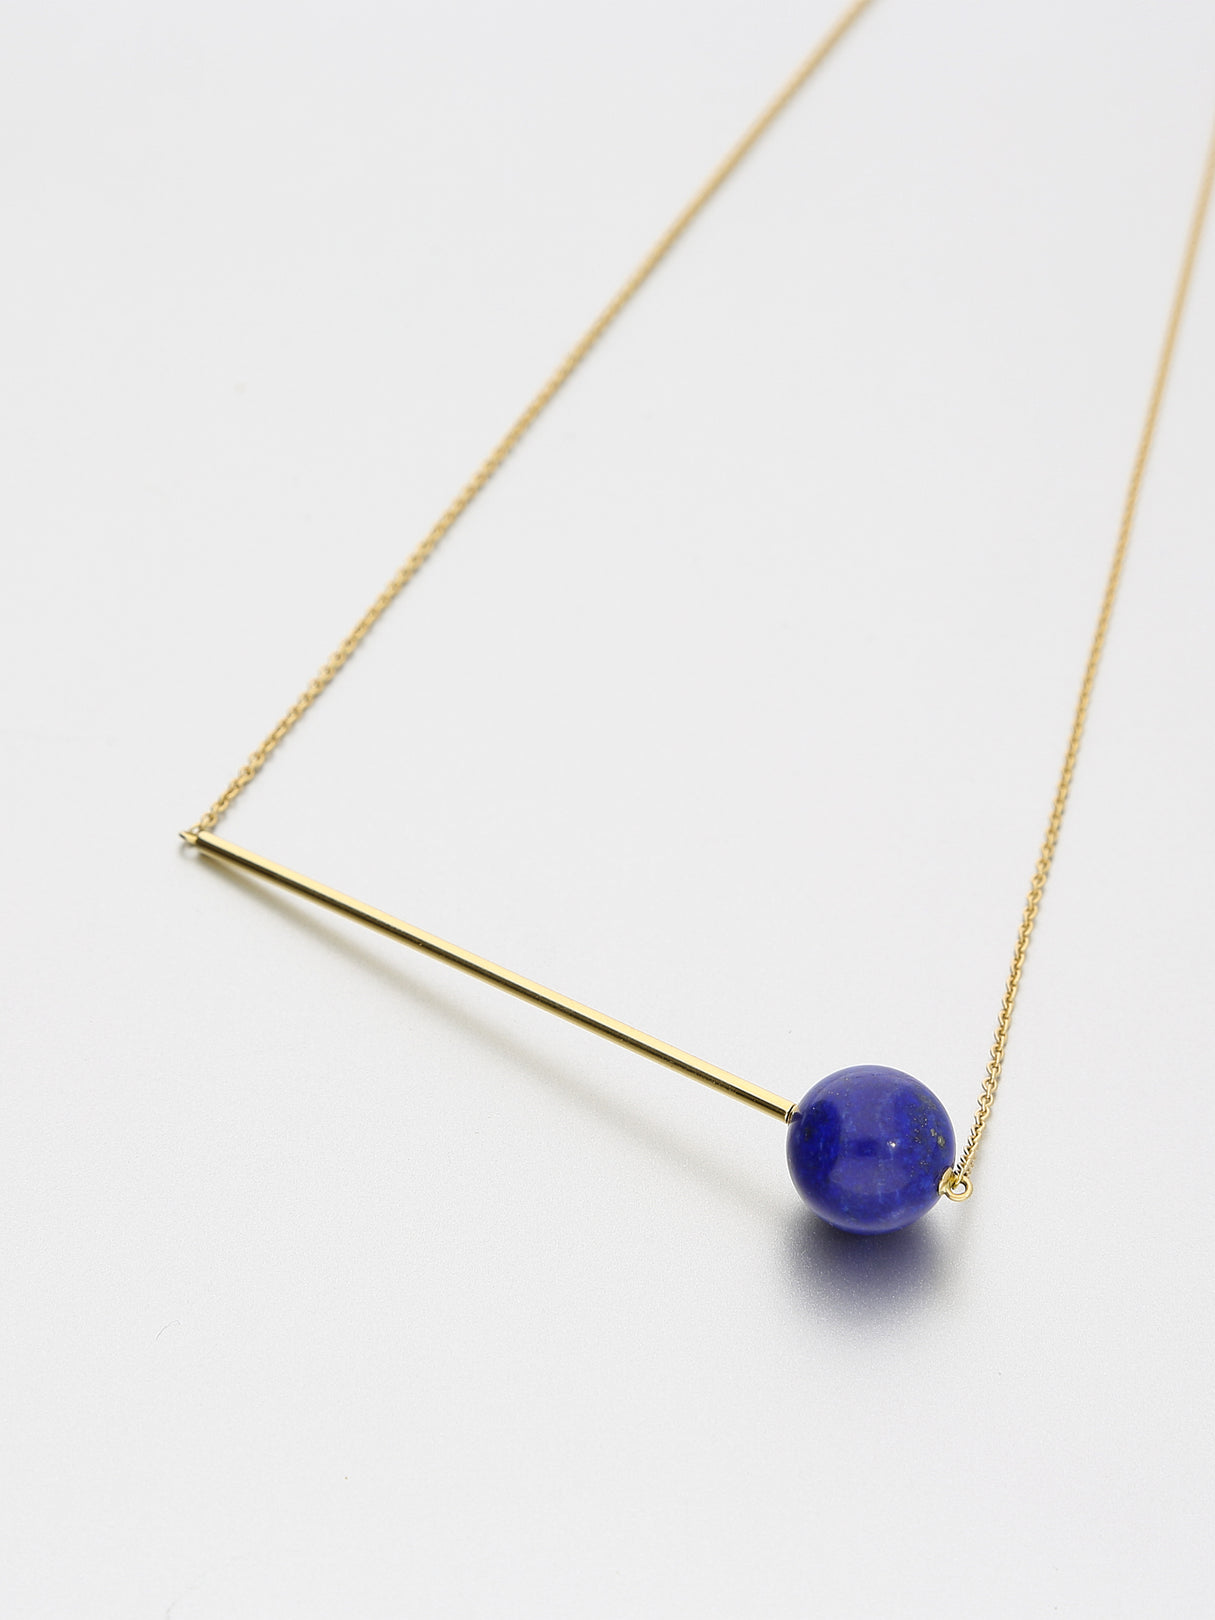 Abacus Lapis Lazuli Necklace, Yellow gold with Lapis Lazuli 12mm